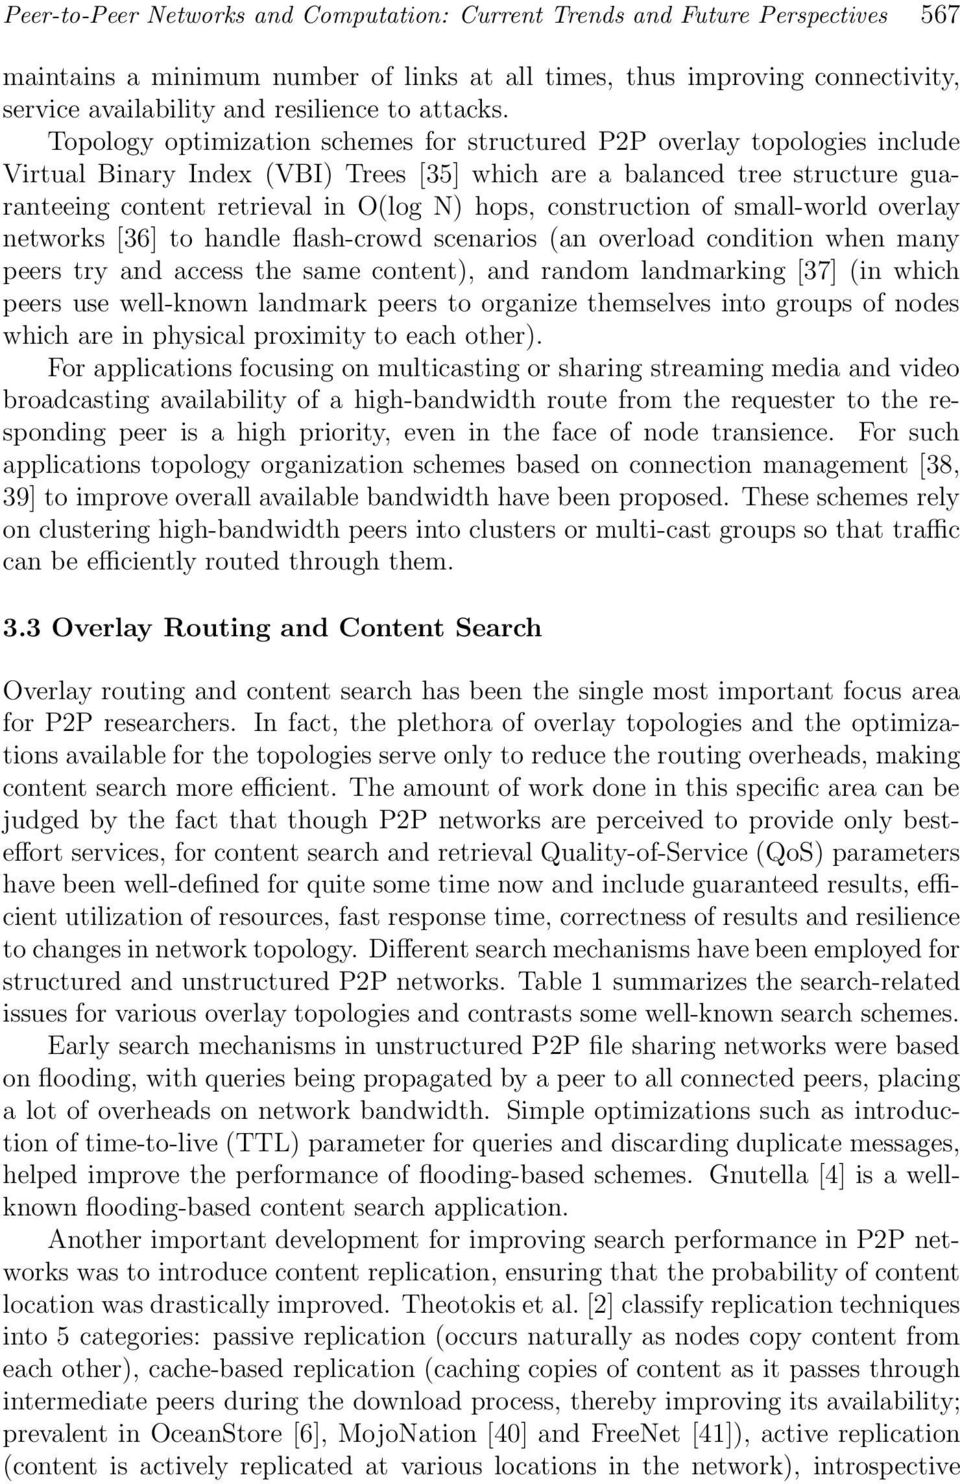 Topology optimization schemes for structured P2P overlay topologies include Virtual Binary Index (VBI) Trees [35] which are a balanced tree structure guaranteeing content retrieval in O(log N) hops,